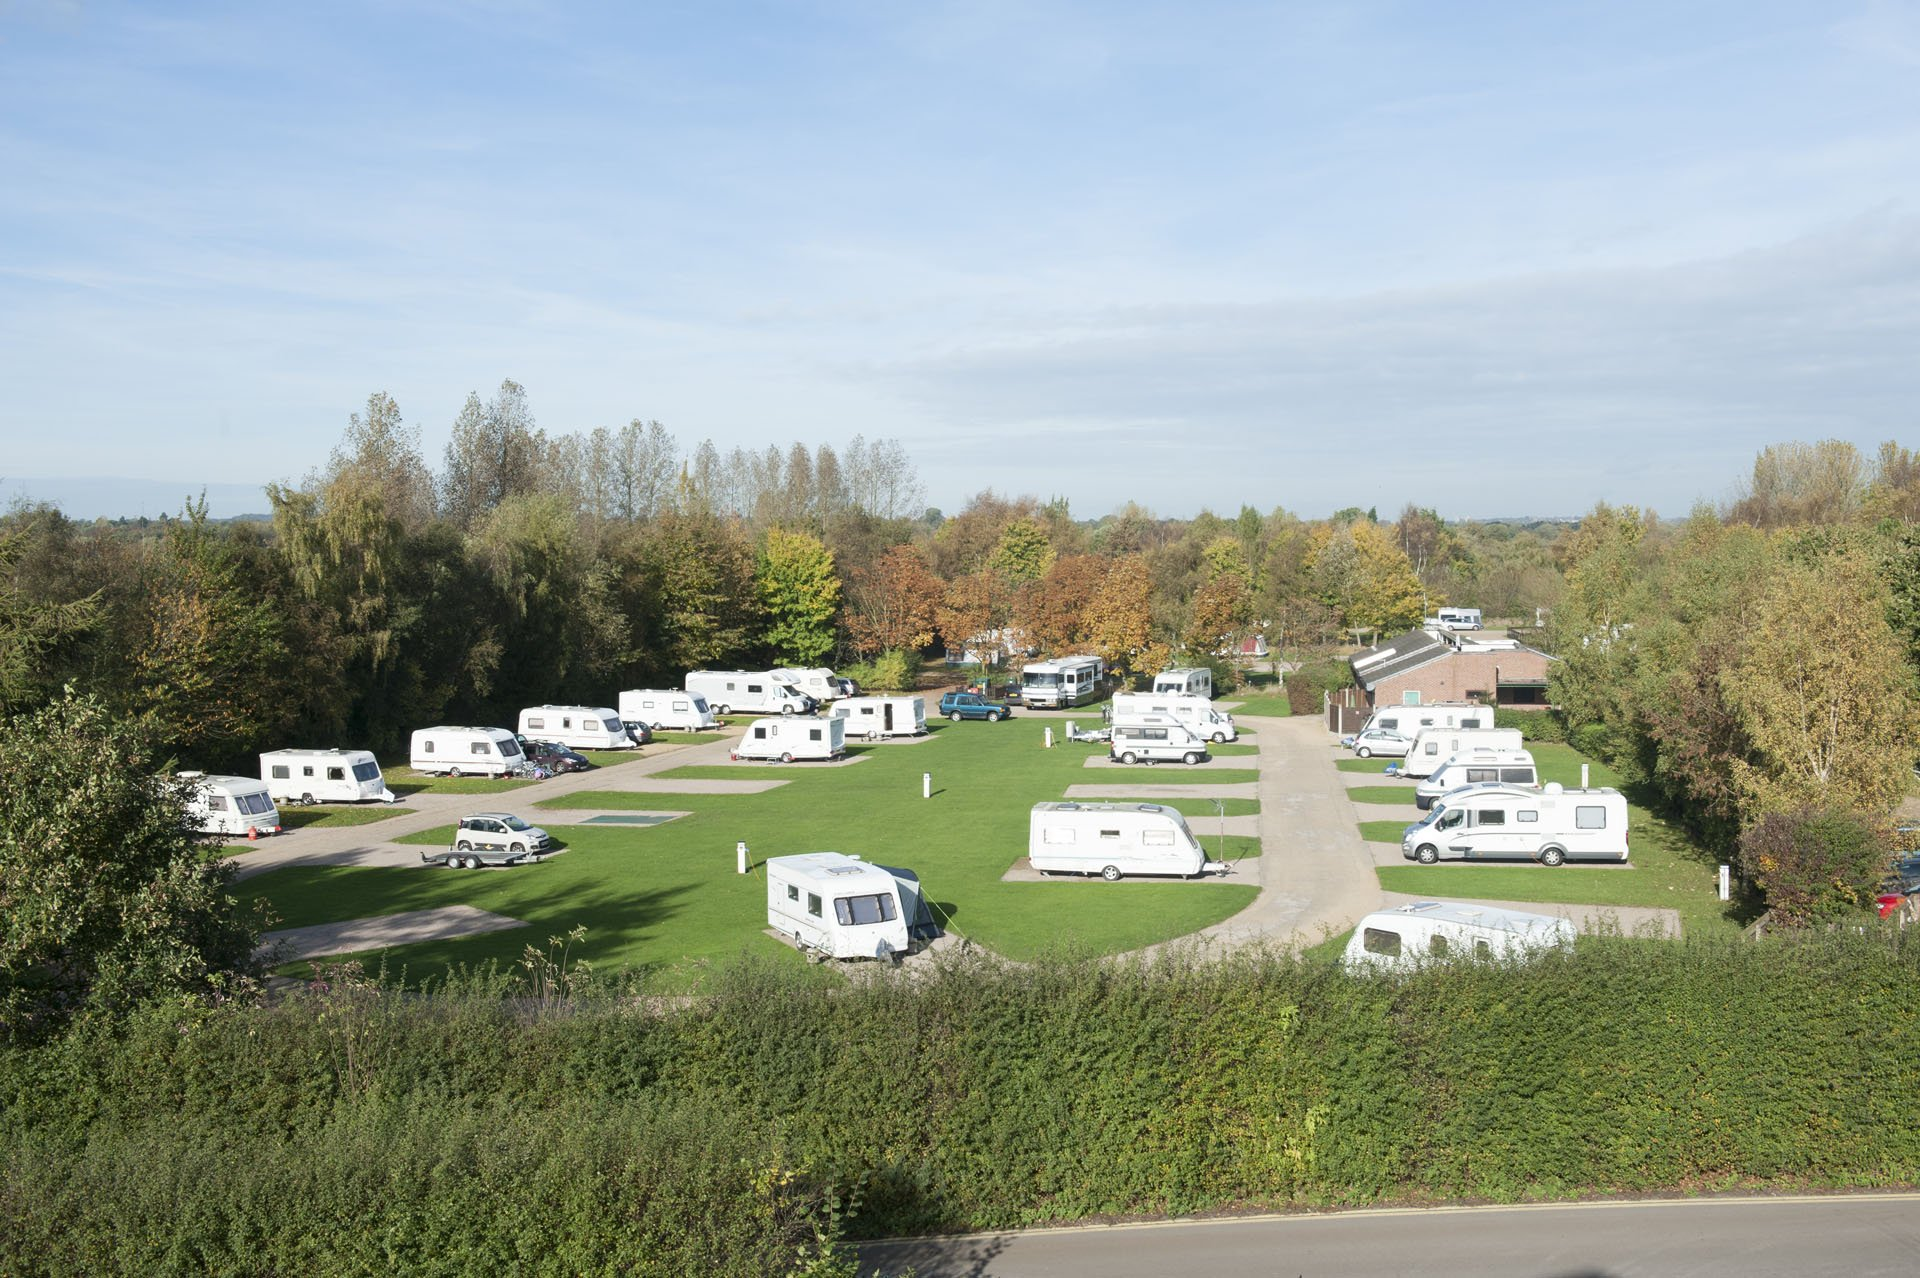 best family campsite, best child friendly campsite, best family campsites uk, best family campsites US,